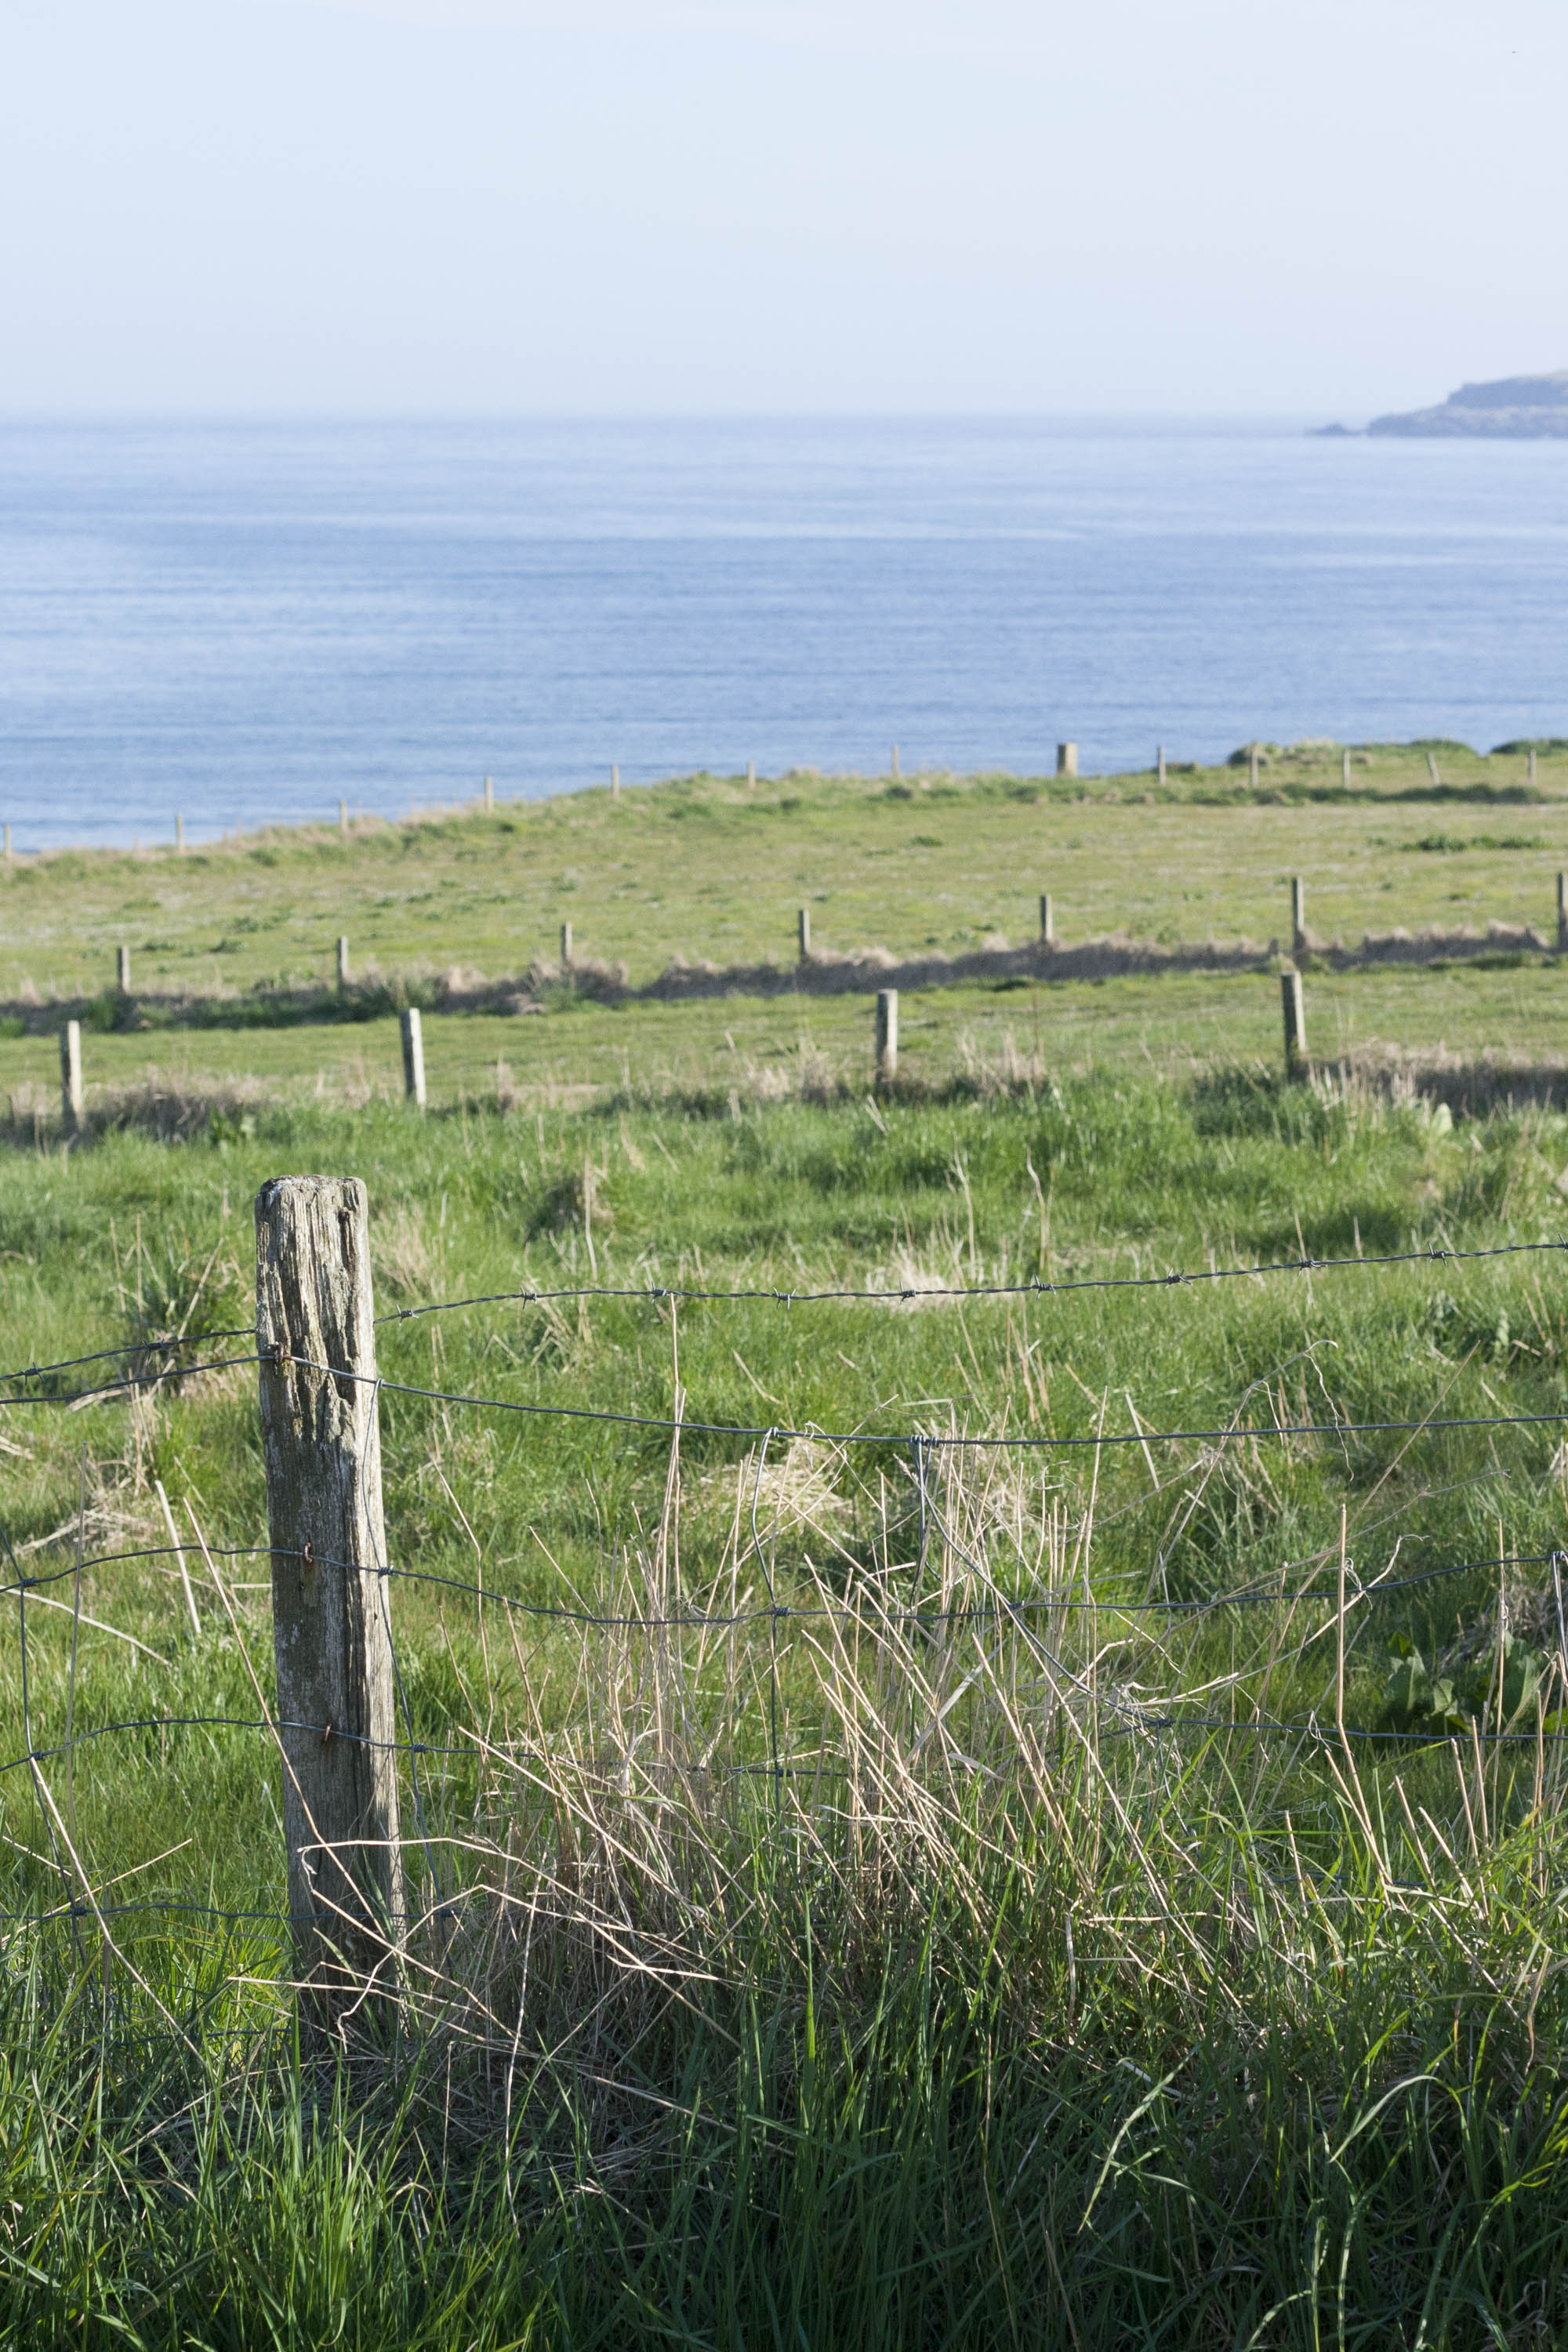 At Hoswick, Shetland, a view across fields to sea with a glimpse of Levenwick headland. A sunny day with spring grass growth and a fence post in the foreground